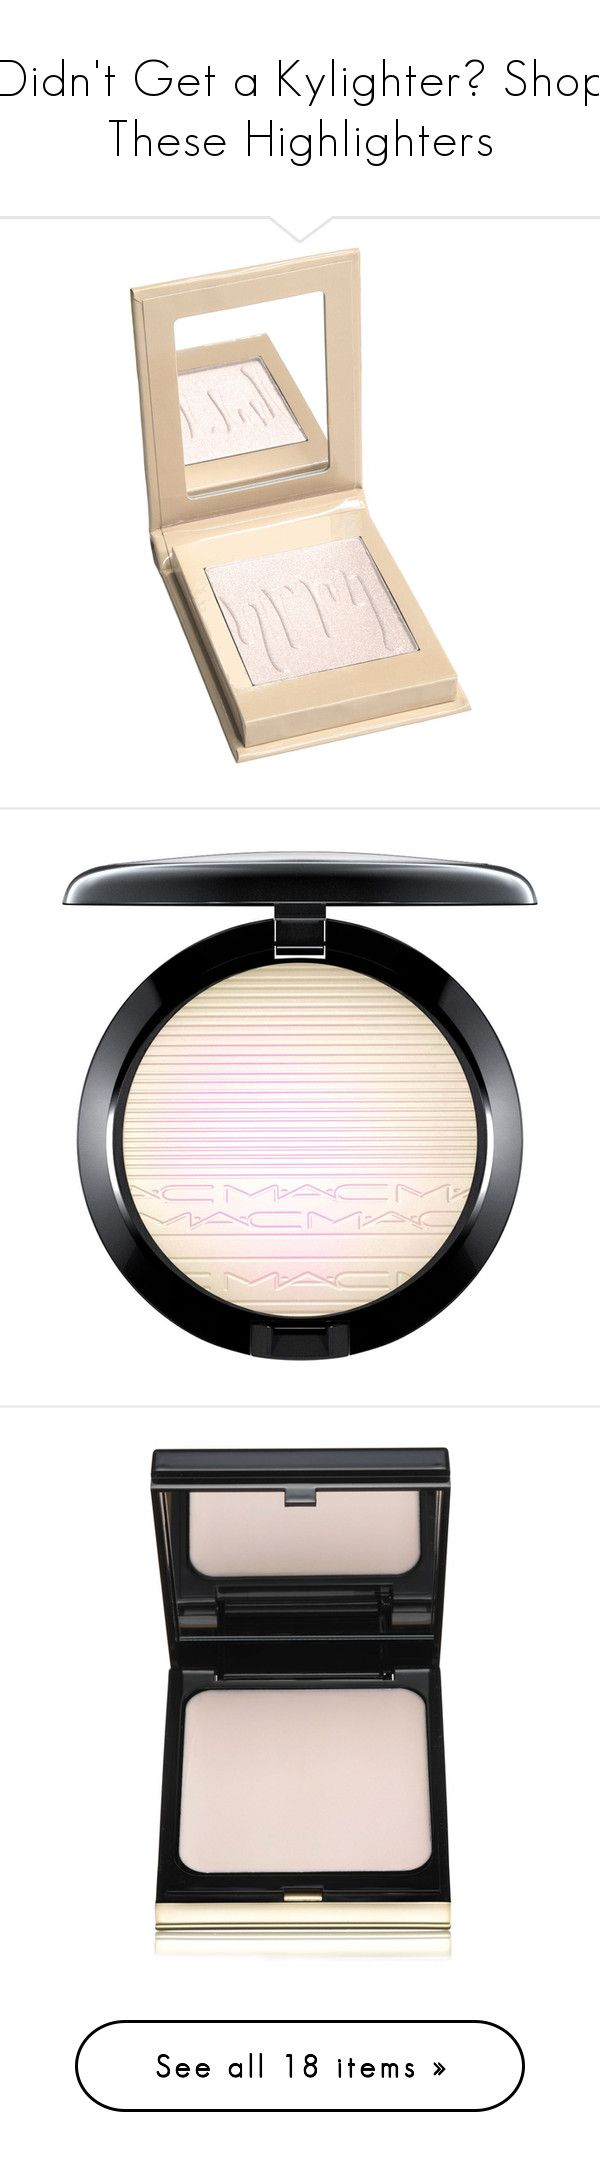 """""""Didn't Get a Kylighter? Shop These Highlighters"""" by polyvore-editorial ❤ liked on Polyvore featuring KylieJenner, highlighters, makeup, beauty products, face makeup, beauty, cosmetics, faces, fillers and backgrounds"""